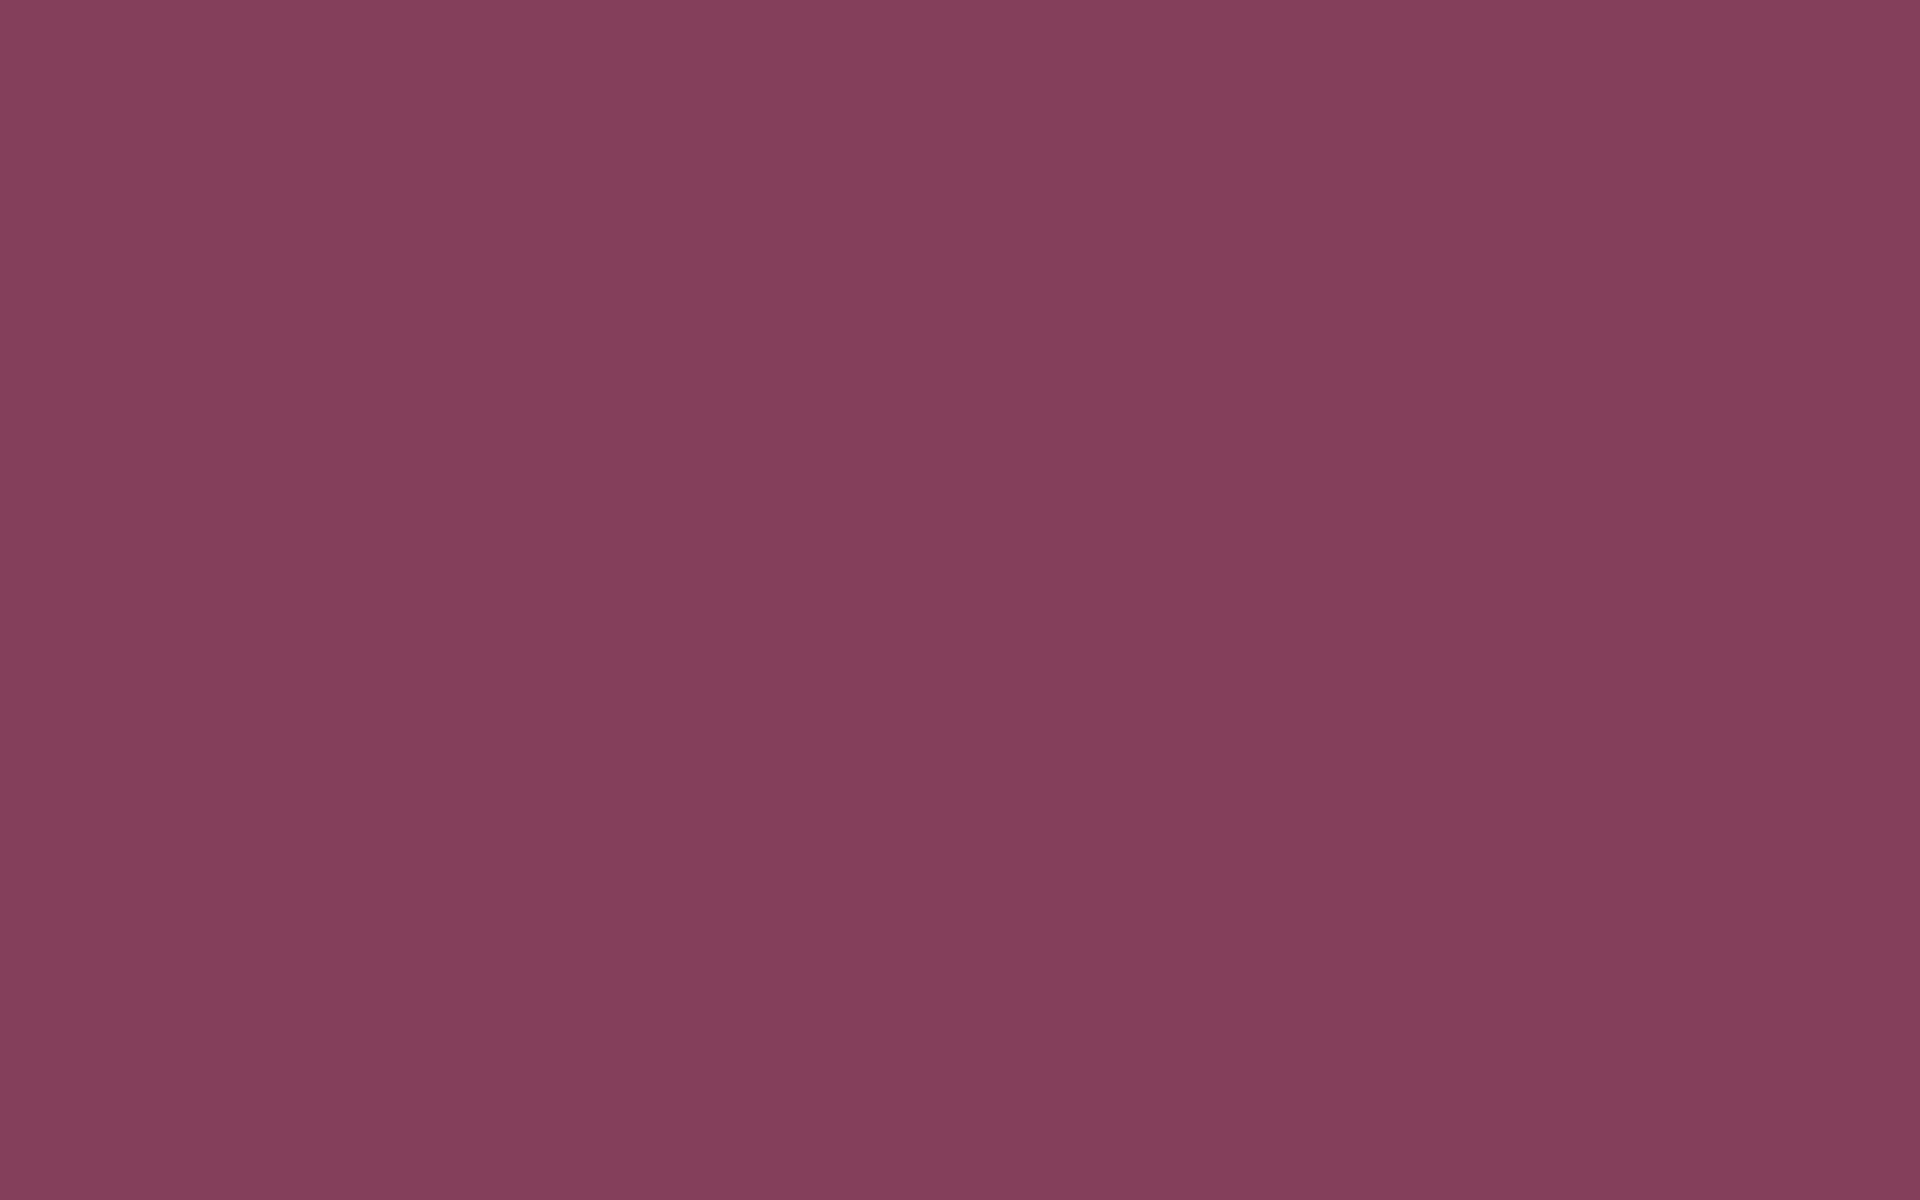 1920x1200 Deep Ruby Solid Color Background